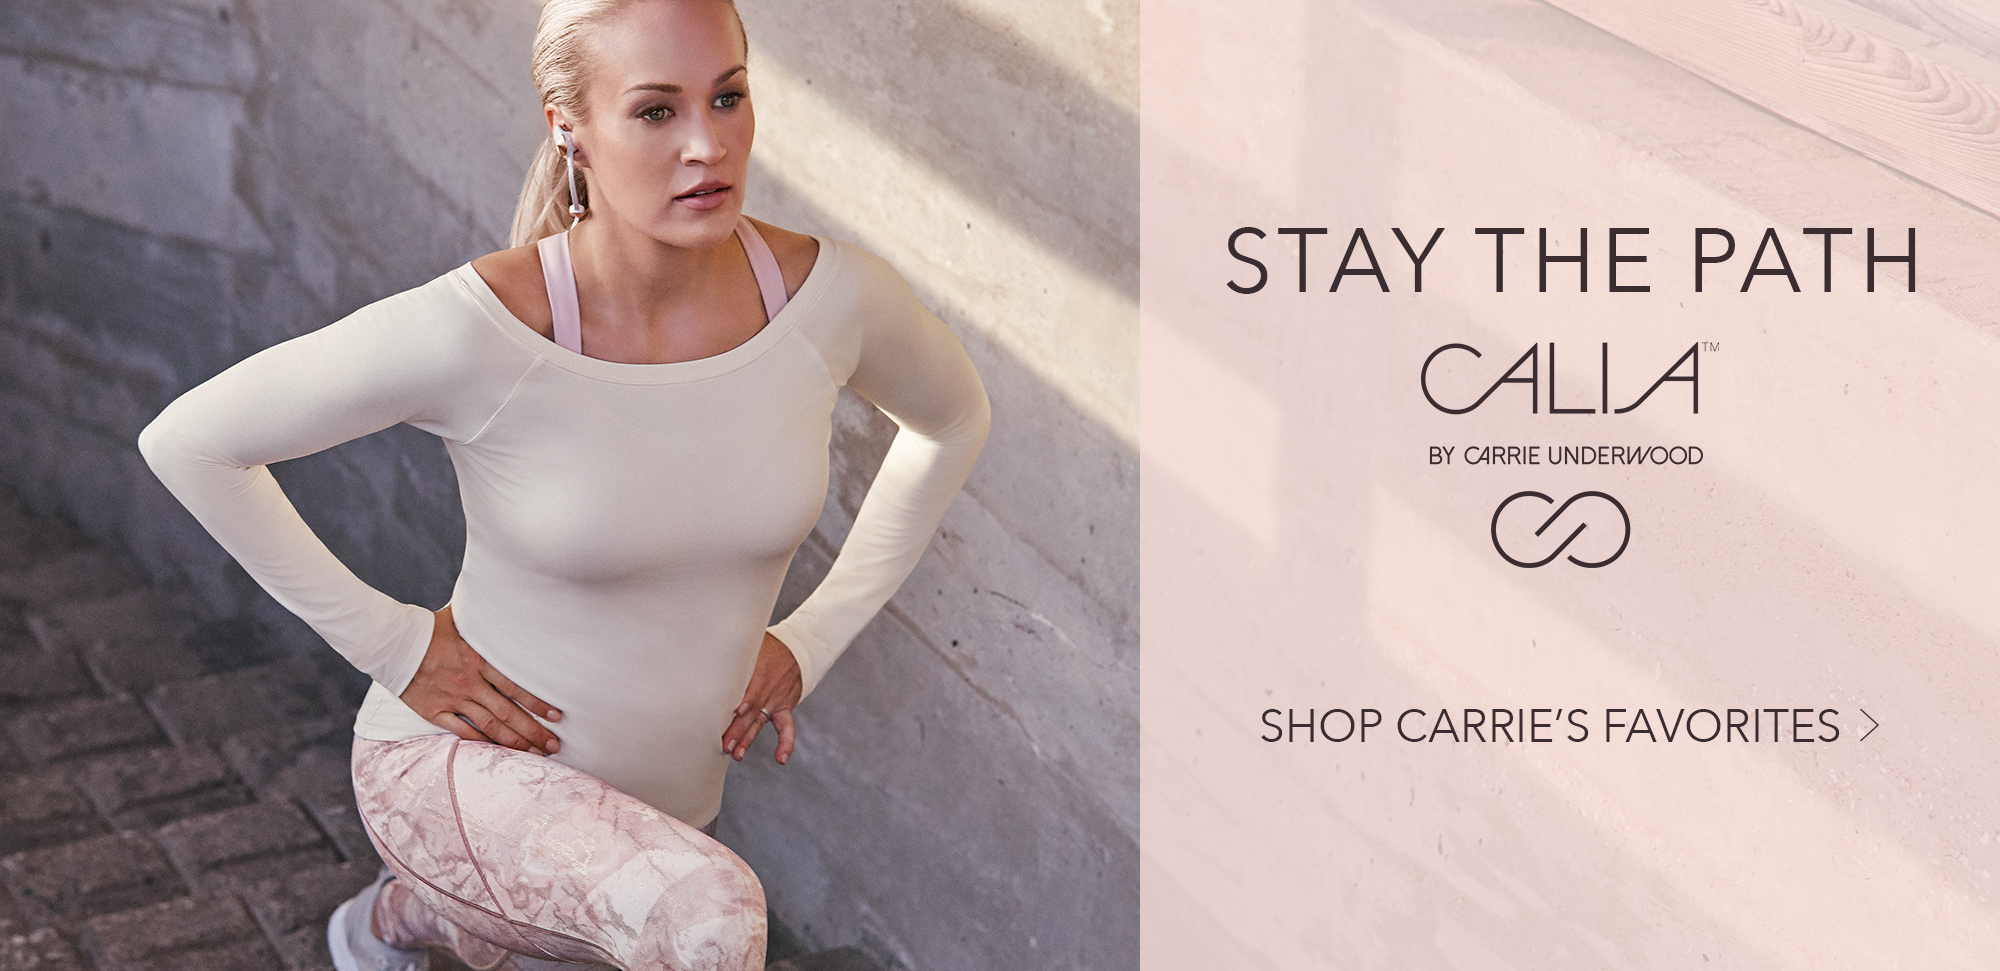 Calia By Carrie Underwood. Shop Carrie's Favorites